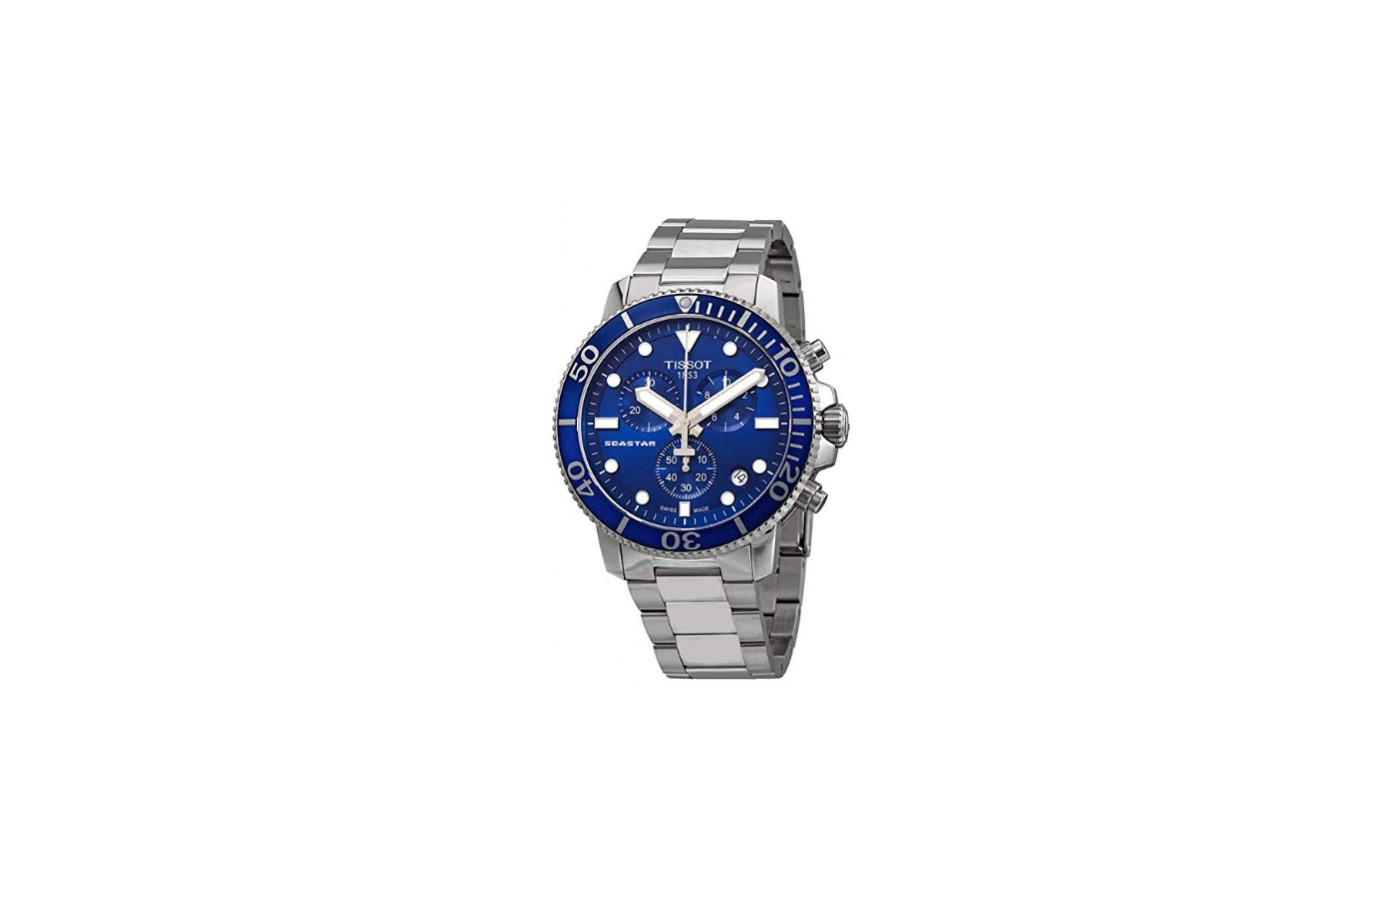 The Tissot Seastar 1000 is an attractive looking timepiece.